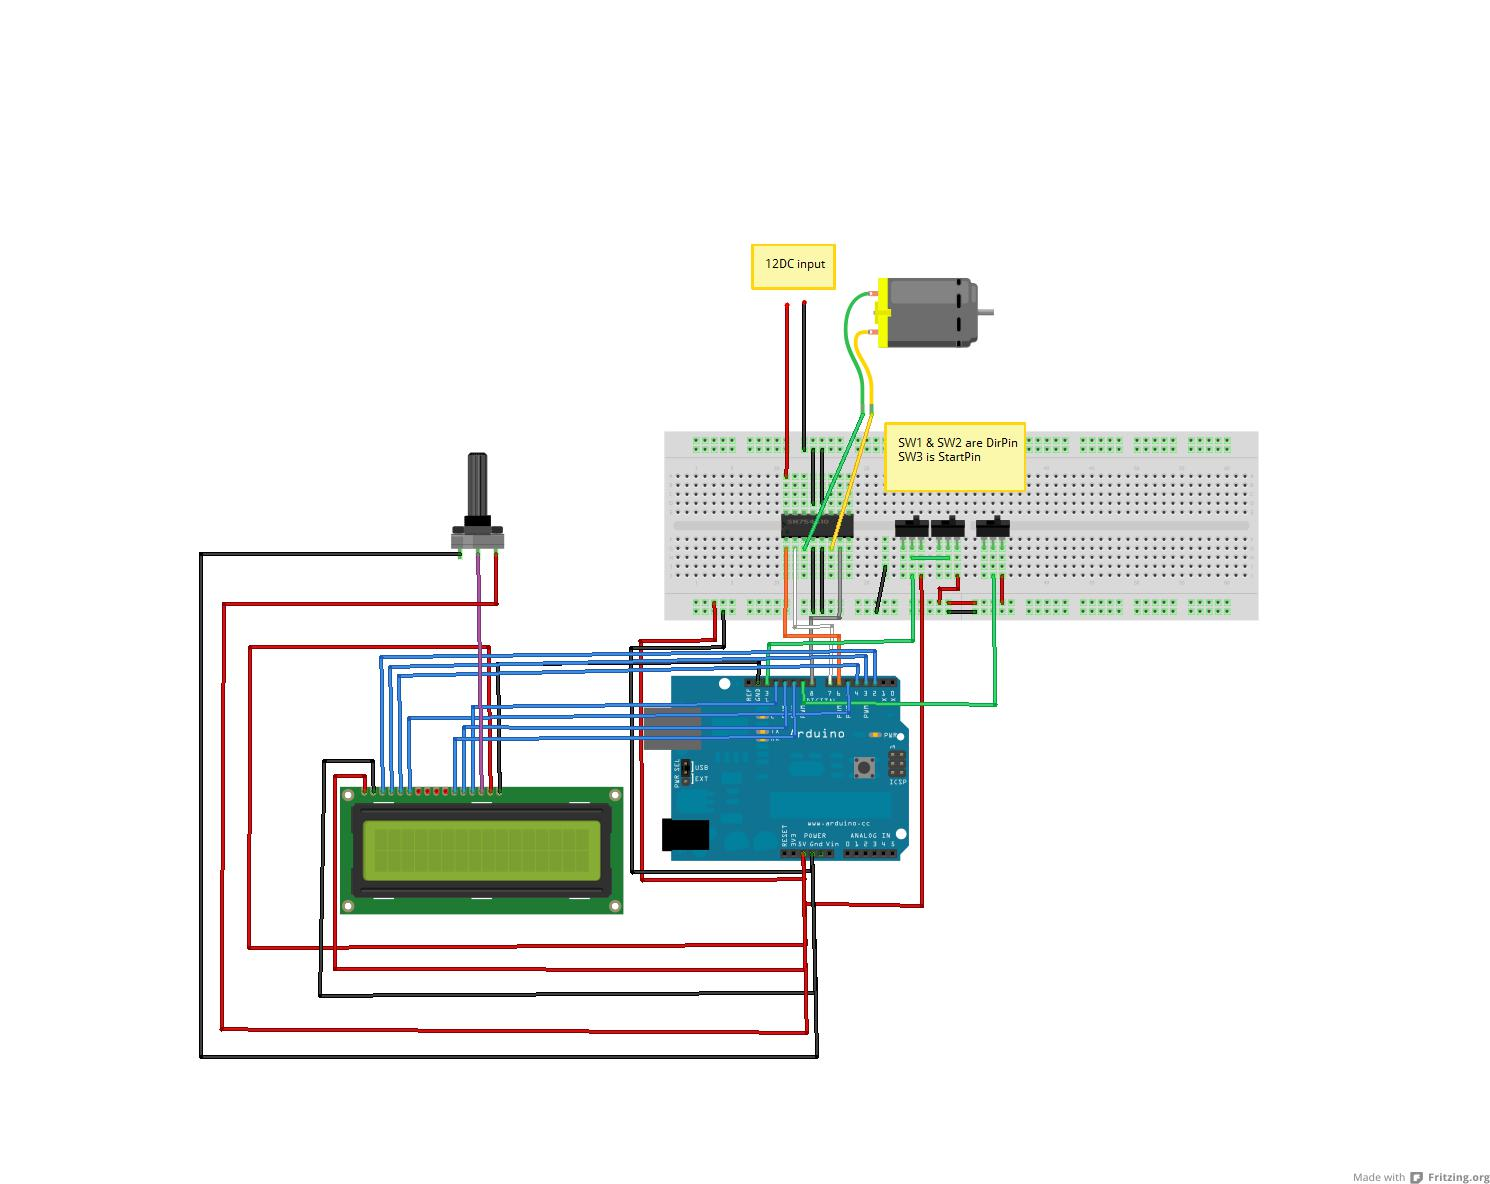 Picture of Part 3: Programing and Circuit Design